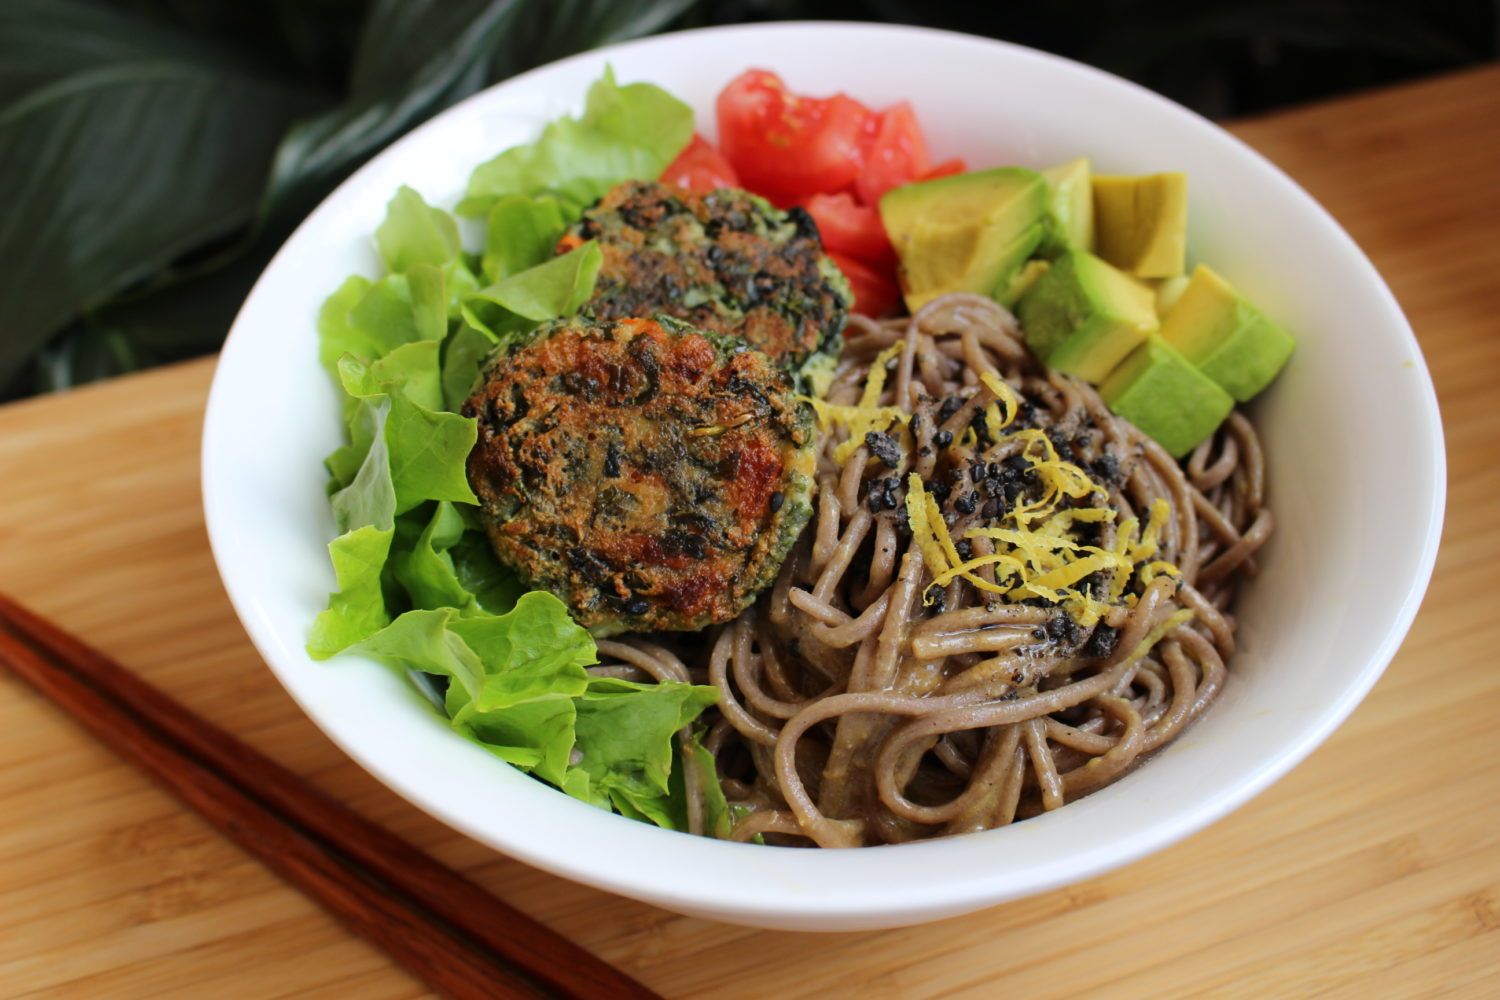 Soba_salad_tofu_ball soba-snack-sydney-vegetarian-cookingclass-vegan-glutenfree-cookingschool-healthy-Japanese